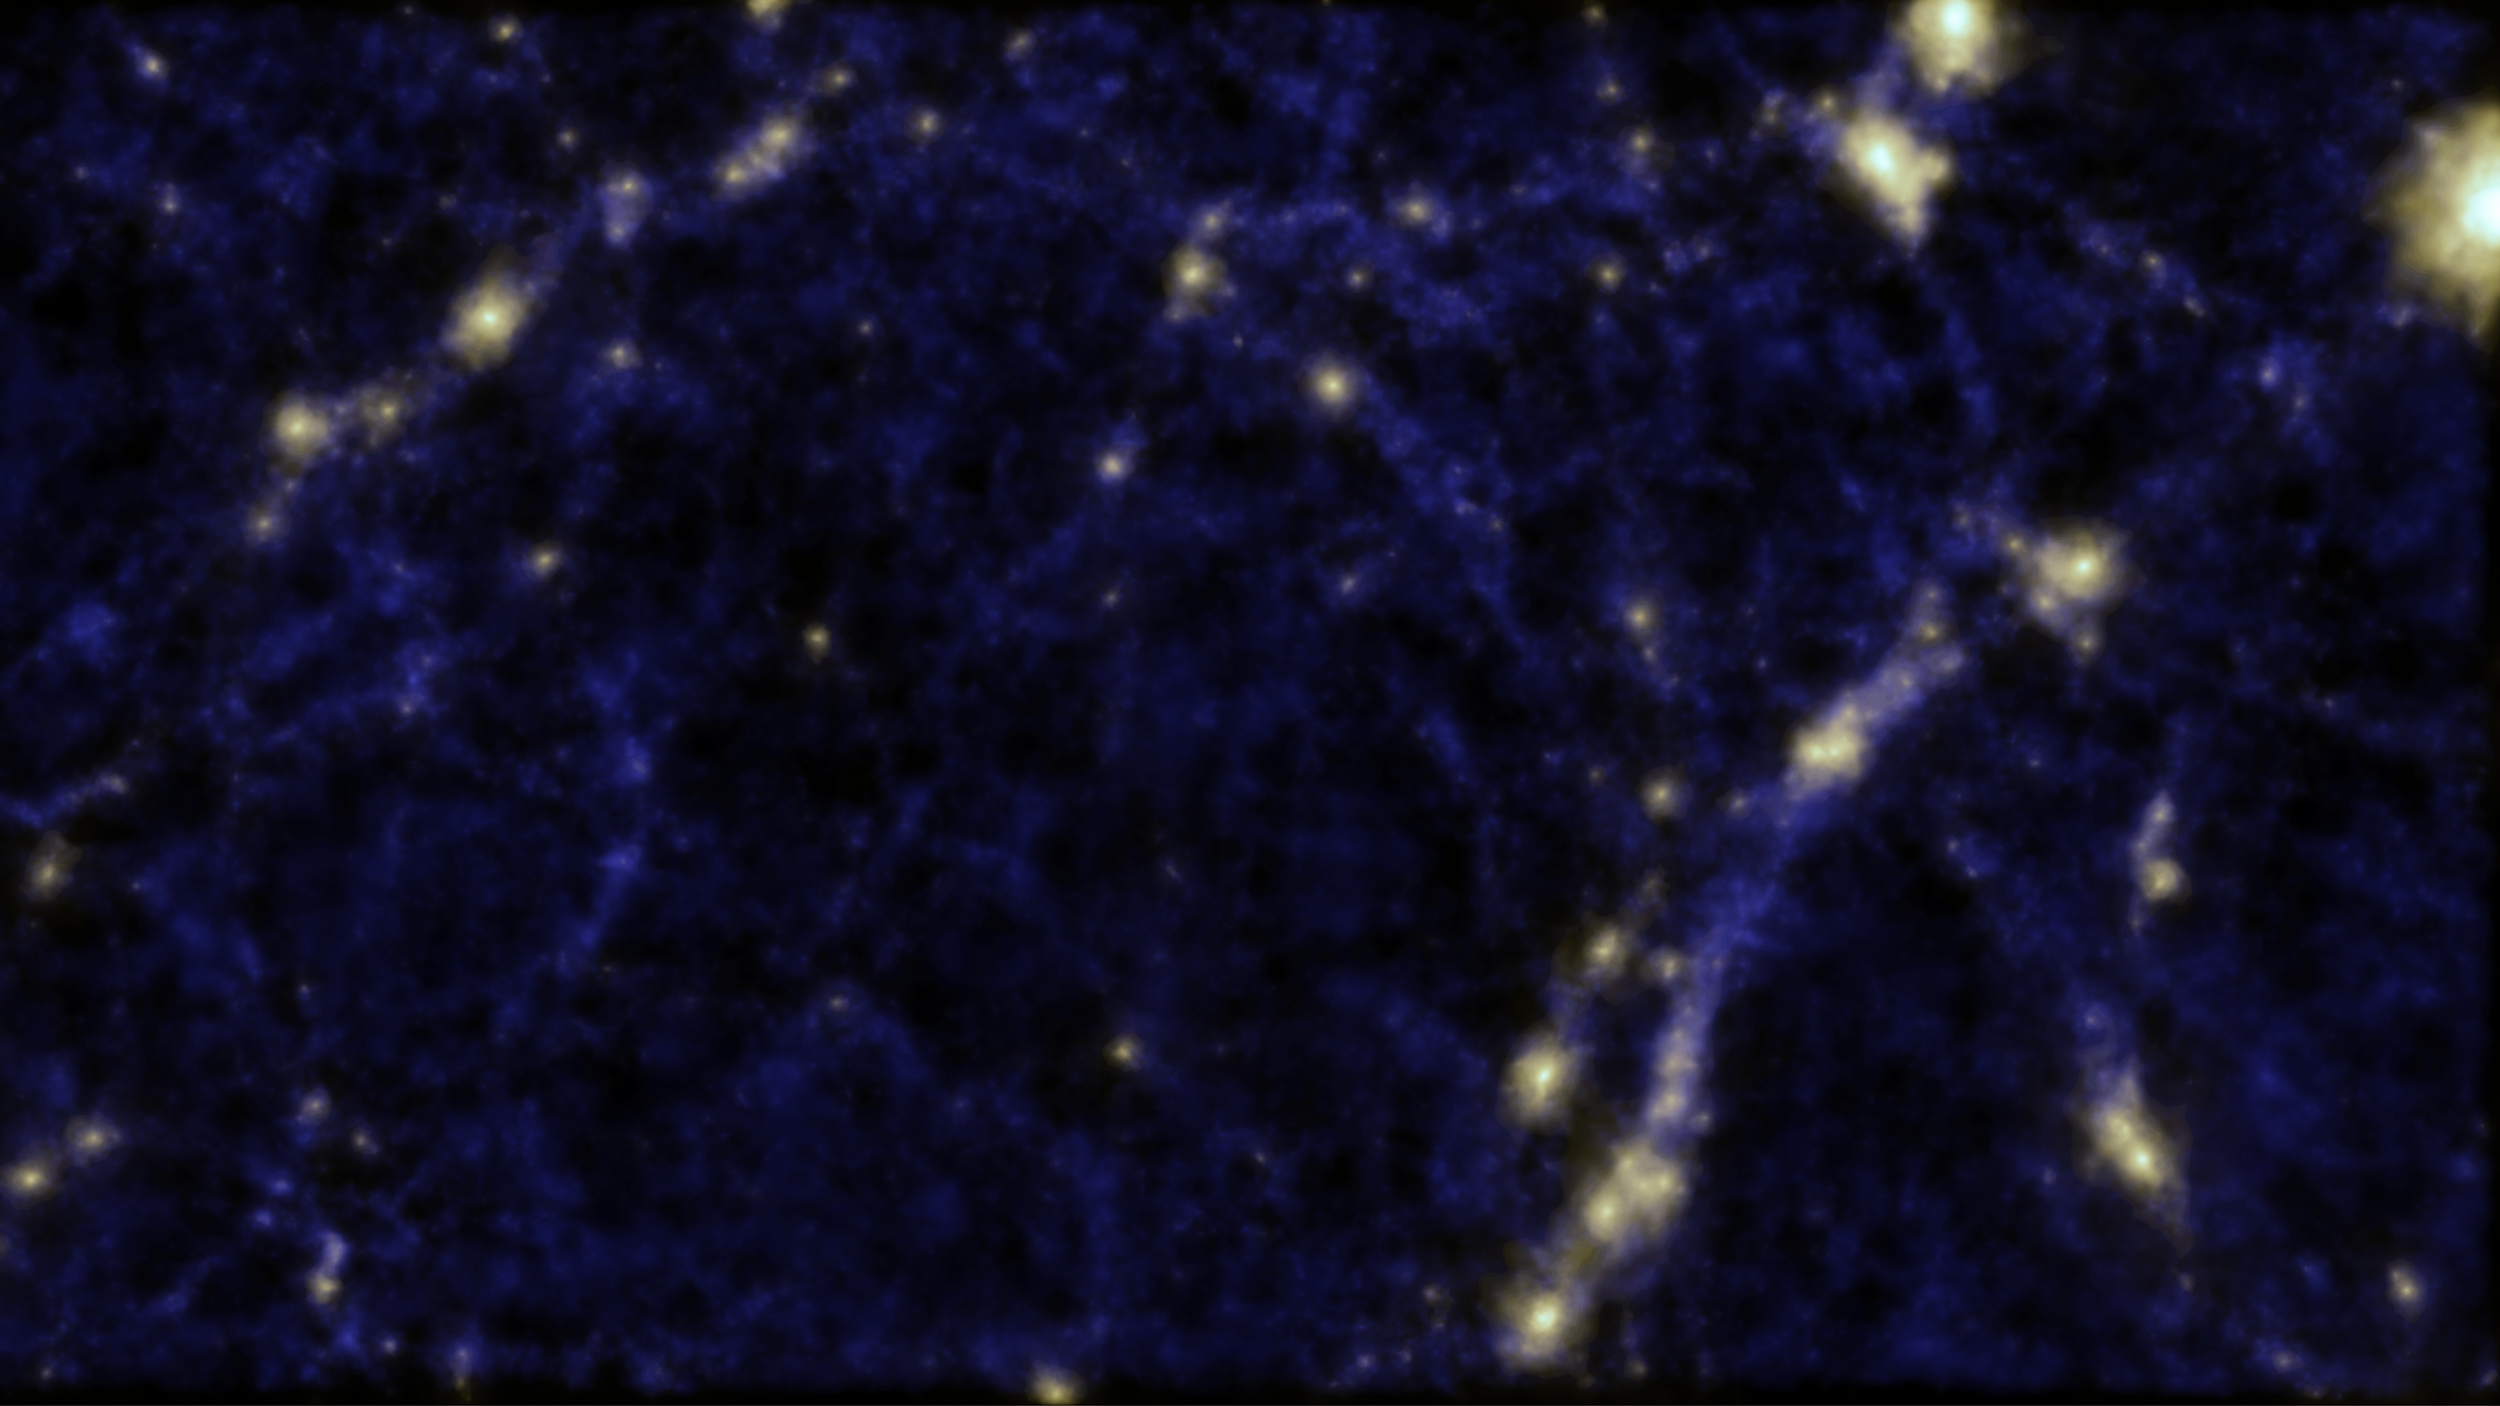 A simulation of the 'Cosmic Web' showing clusters of galaxies and a void in the middle of the image. Credit: Cui, Newton and Power (ICRAR), Cunnama (UWC).